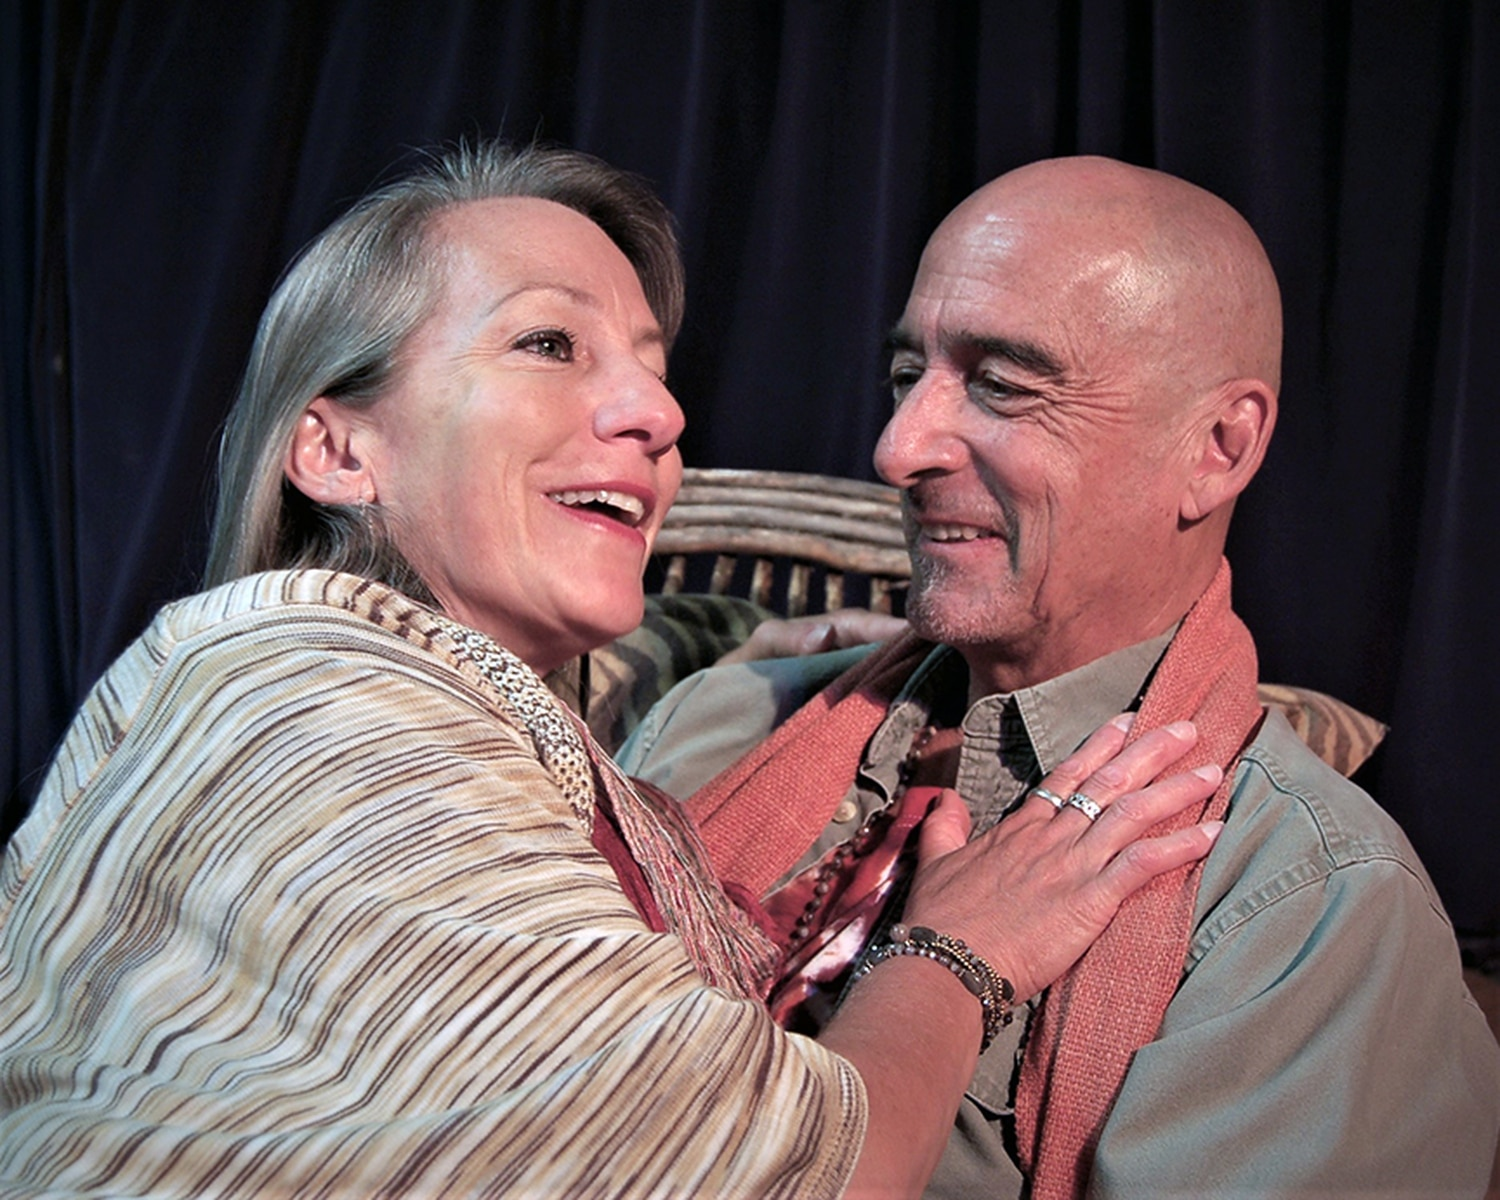 The Quality of Life opens this weekend at Teatro Paraguas and tackles tough subjects, featuring Barbara Hatch as Jeannette and Nicholas Ballas as her husband Neil.